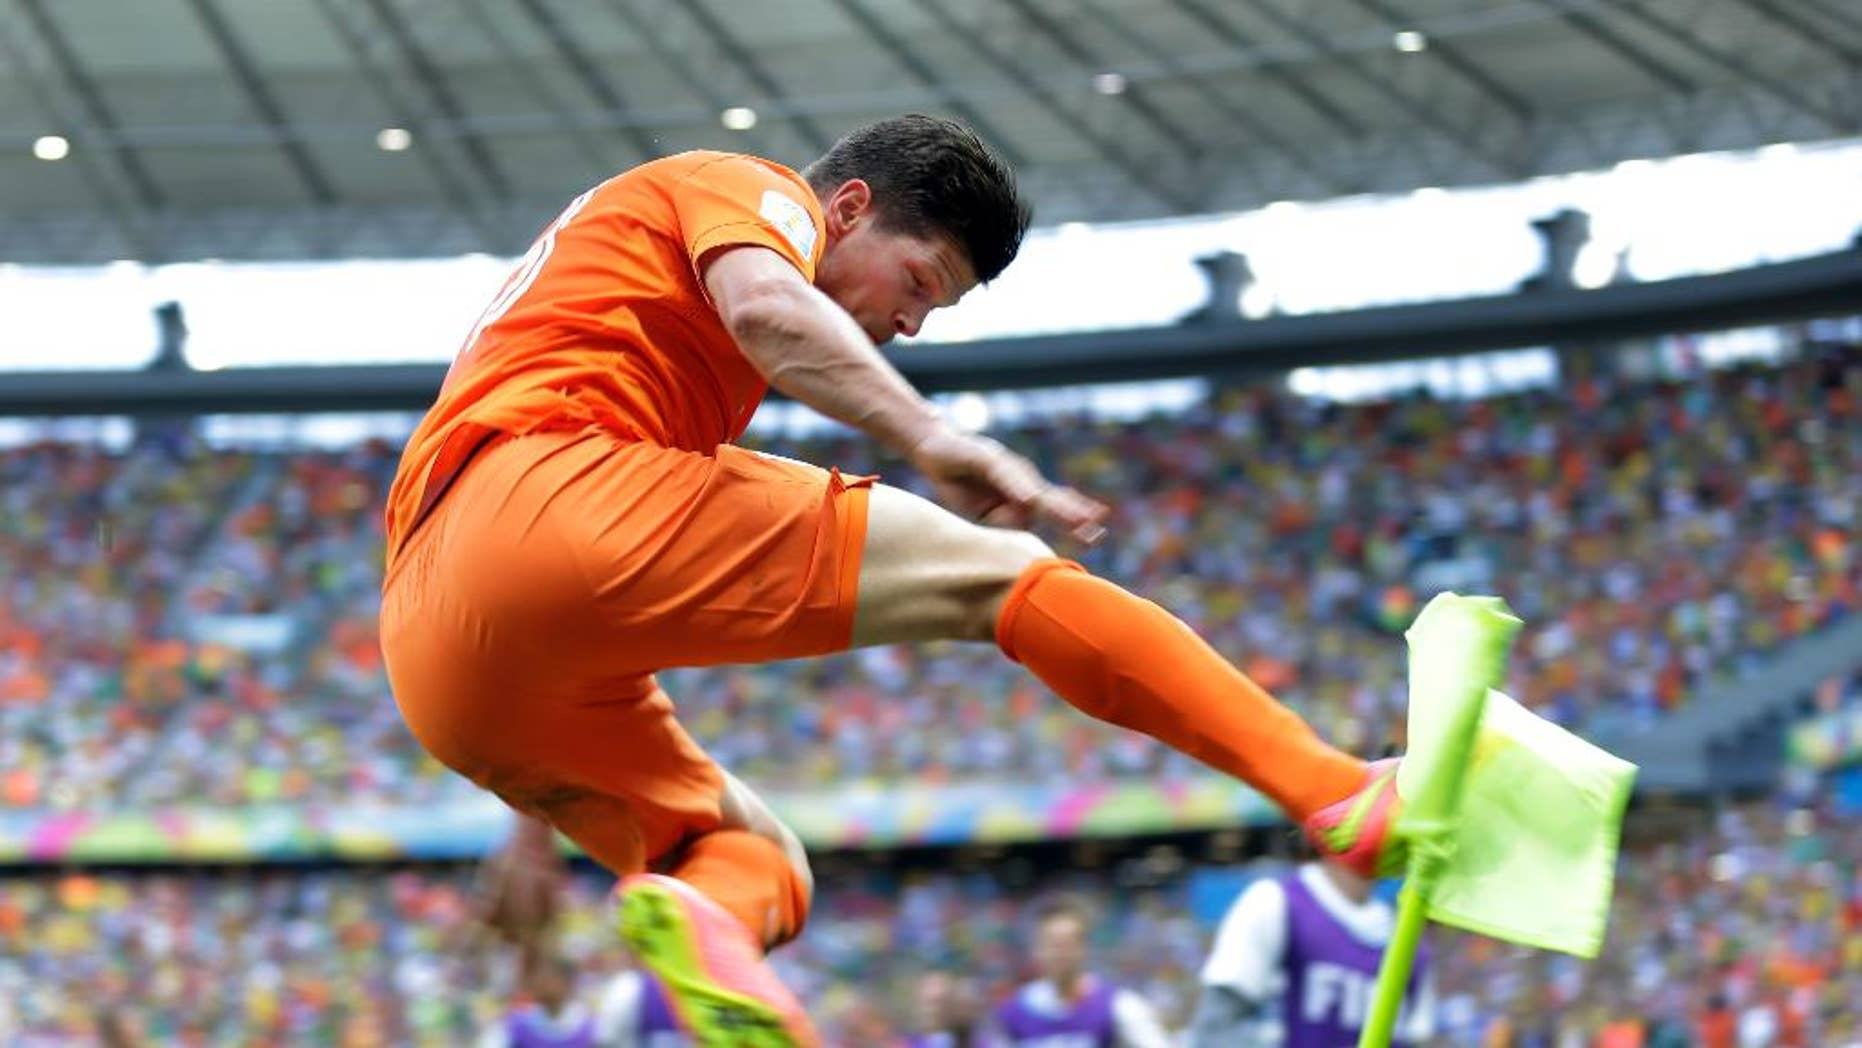 Netherlands' Klaas-Jan Huntelaar celebrates after scoring his side's second goal during the World Cup round of 16 soccer match between the Netherlands and Mexico at the Arena Castelao in Fortaleza, Brazil, Sunday, June 29, 2014.  The Netherlands won the match 2-1. (AP Photo/Natacha Pisarenko)